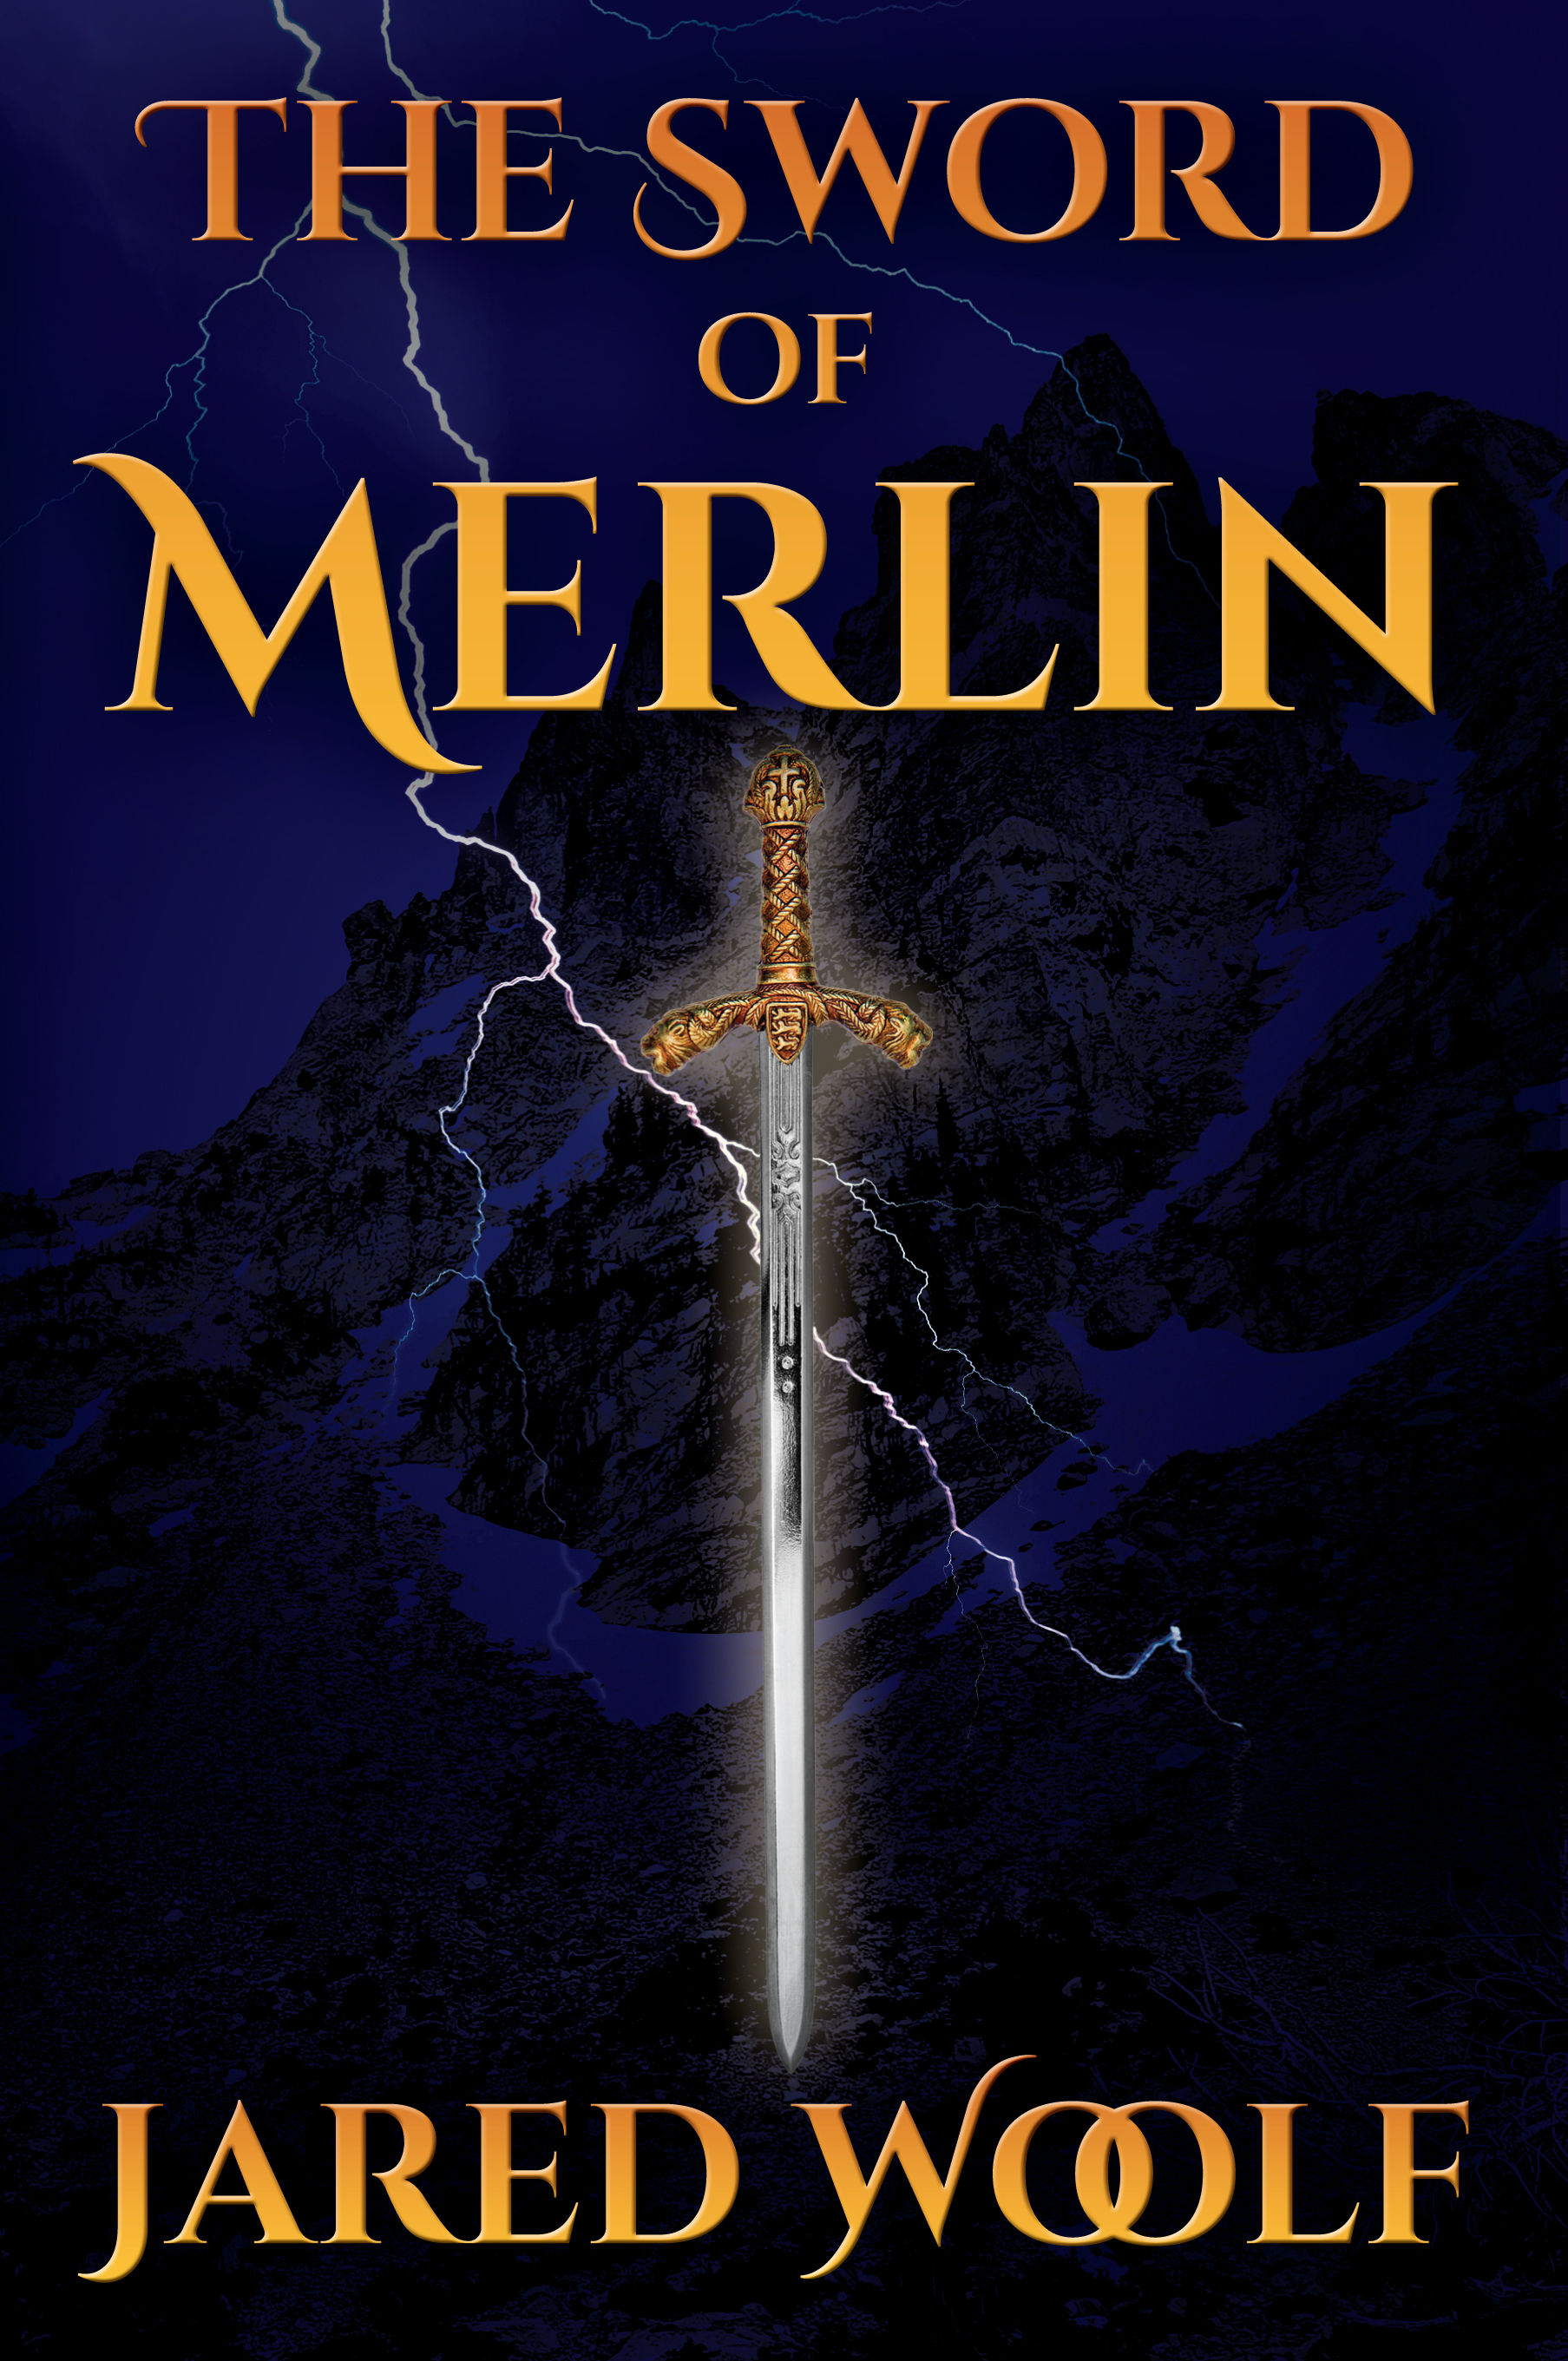 The Sword of Merlin